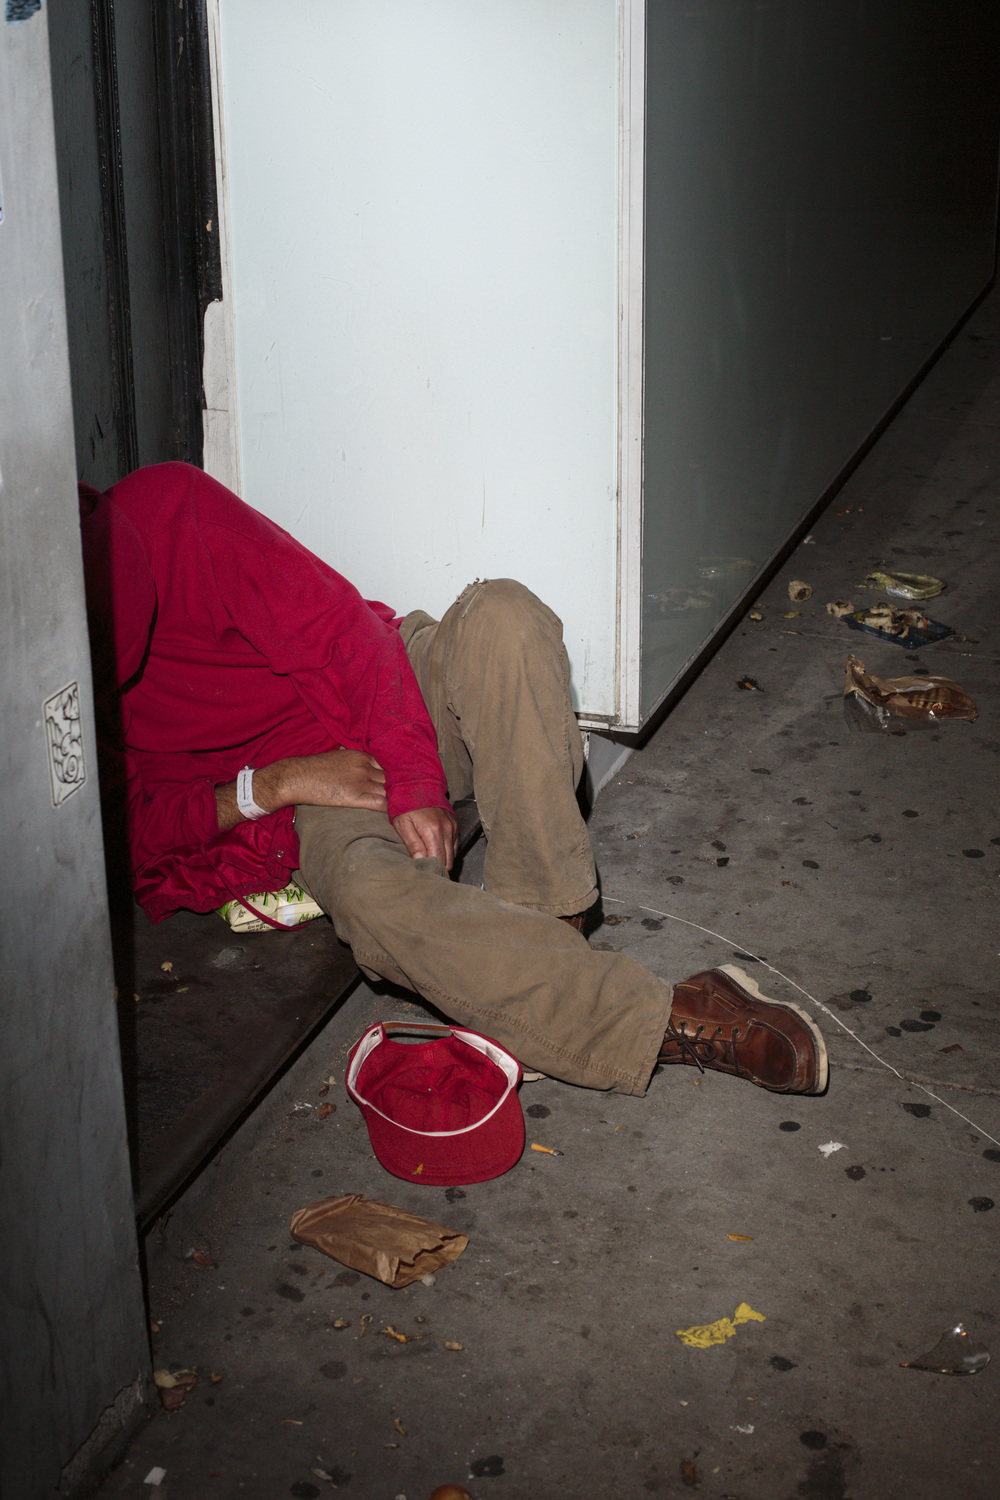 New York, USA - November 06, 2015: A man sleeps in a doorway on the corner of Bowery and Stanton St. The Bowery Mission some blocks away, tries to take care of those living on the street. The Bowery, a street and neighborhood in Manhattan, once home for vagrants and a diversity of subcultures became the playground of artists, fancy bars and real-estate tycoons.